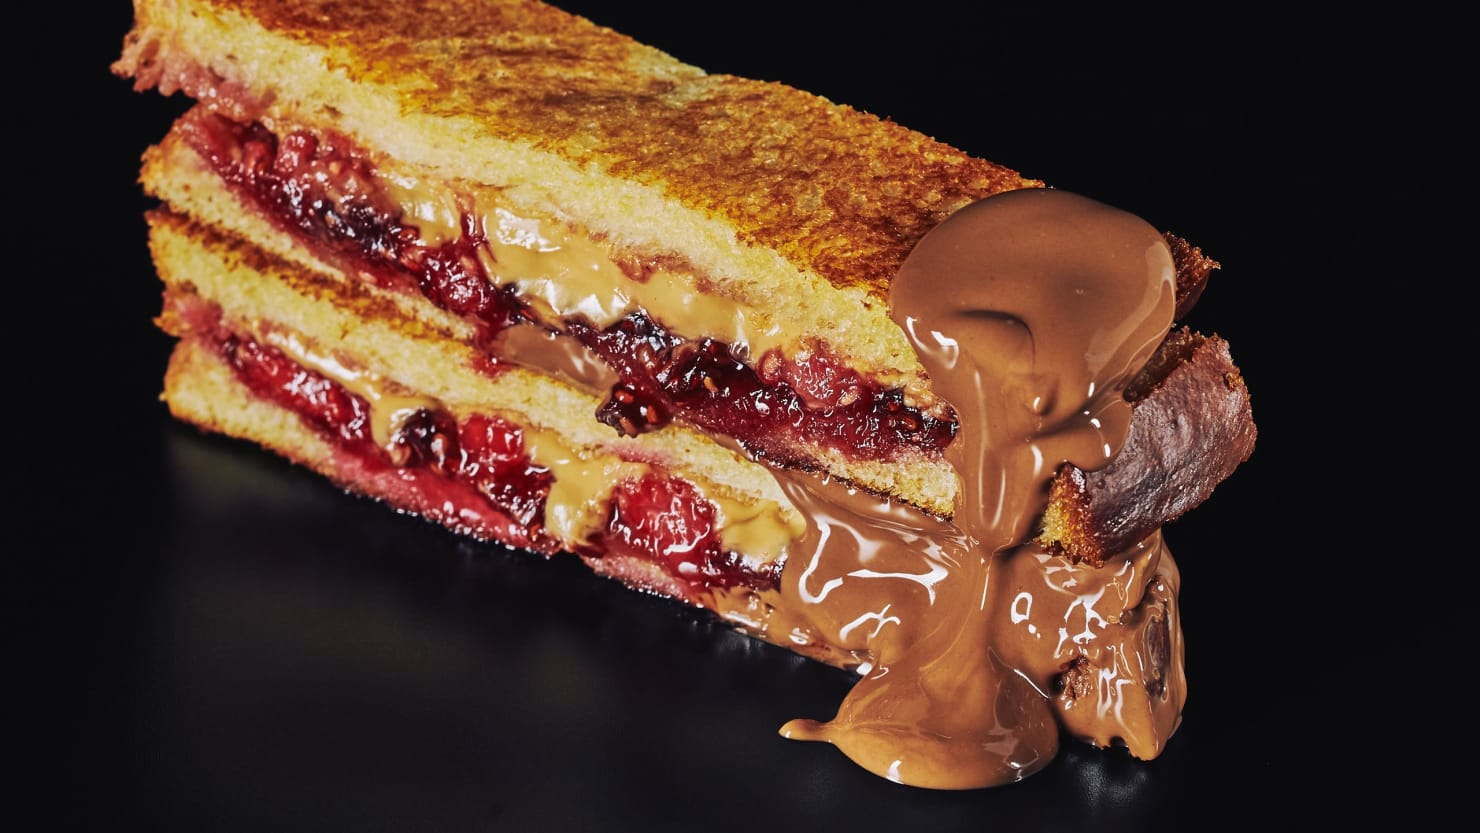 Make This Fried Peanut Butter Jelly Amp Chocolate Sandwich